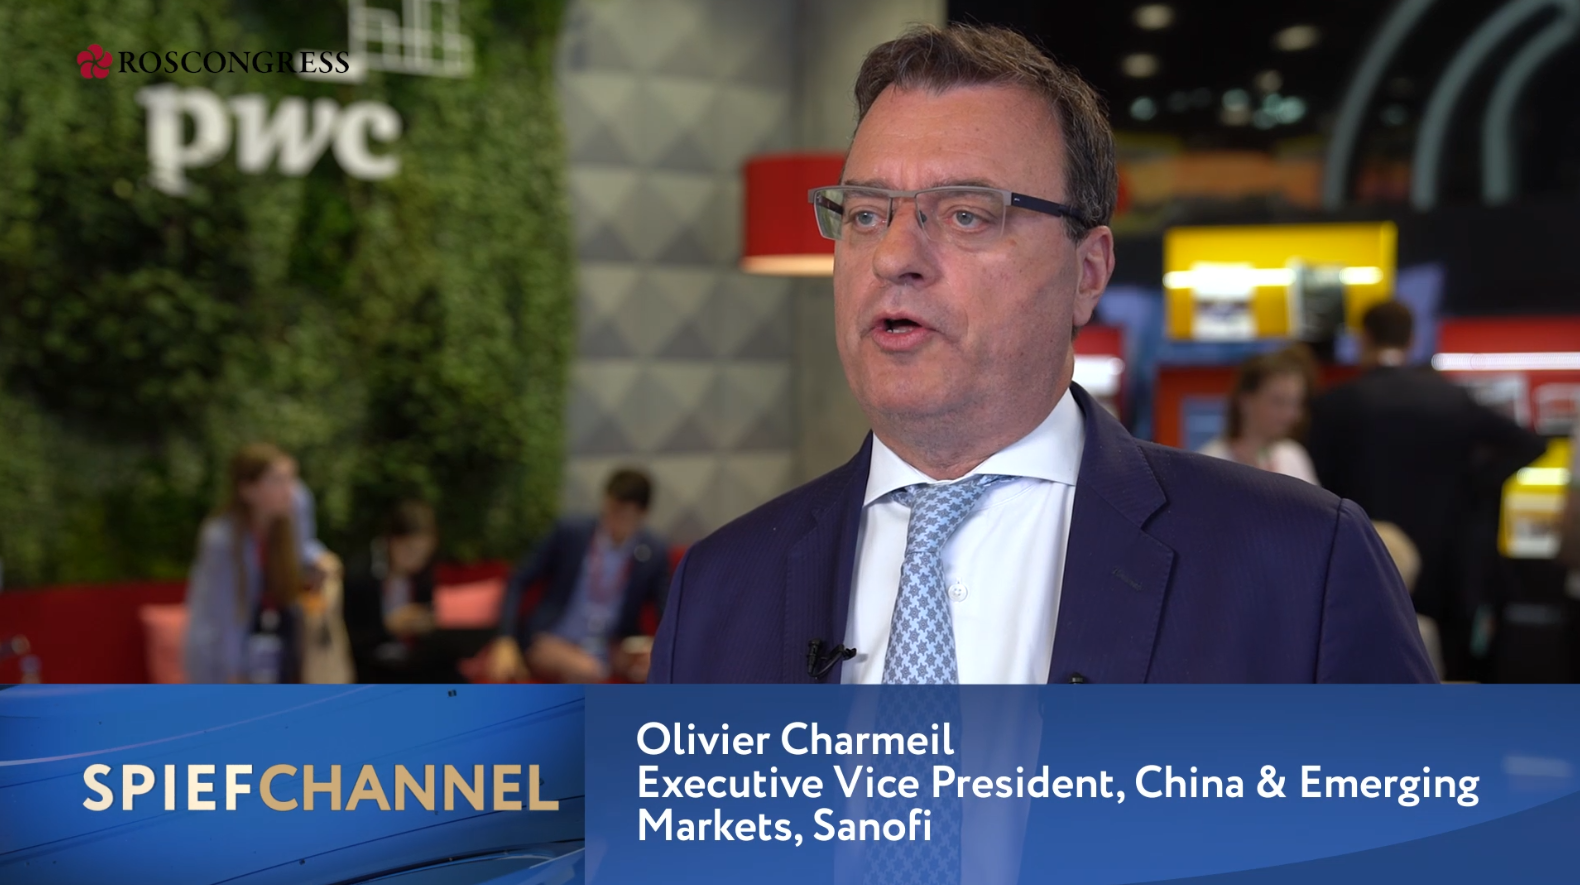 Olivier Charmeil, Executive Vice President, China and Emerging Markets , Sanofi